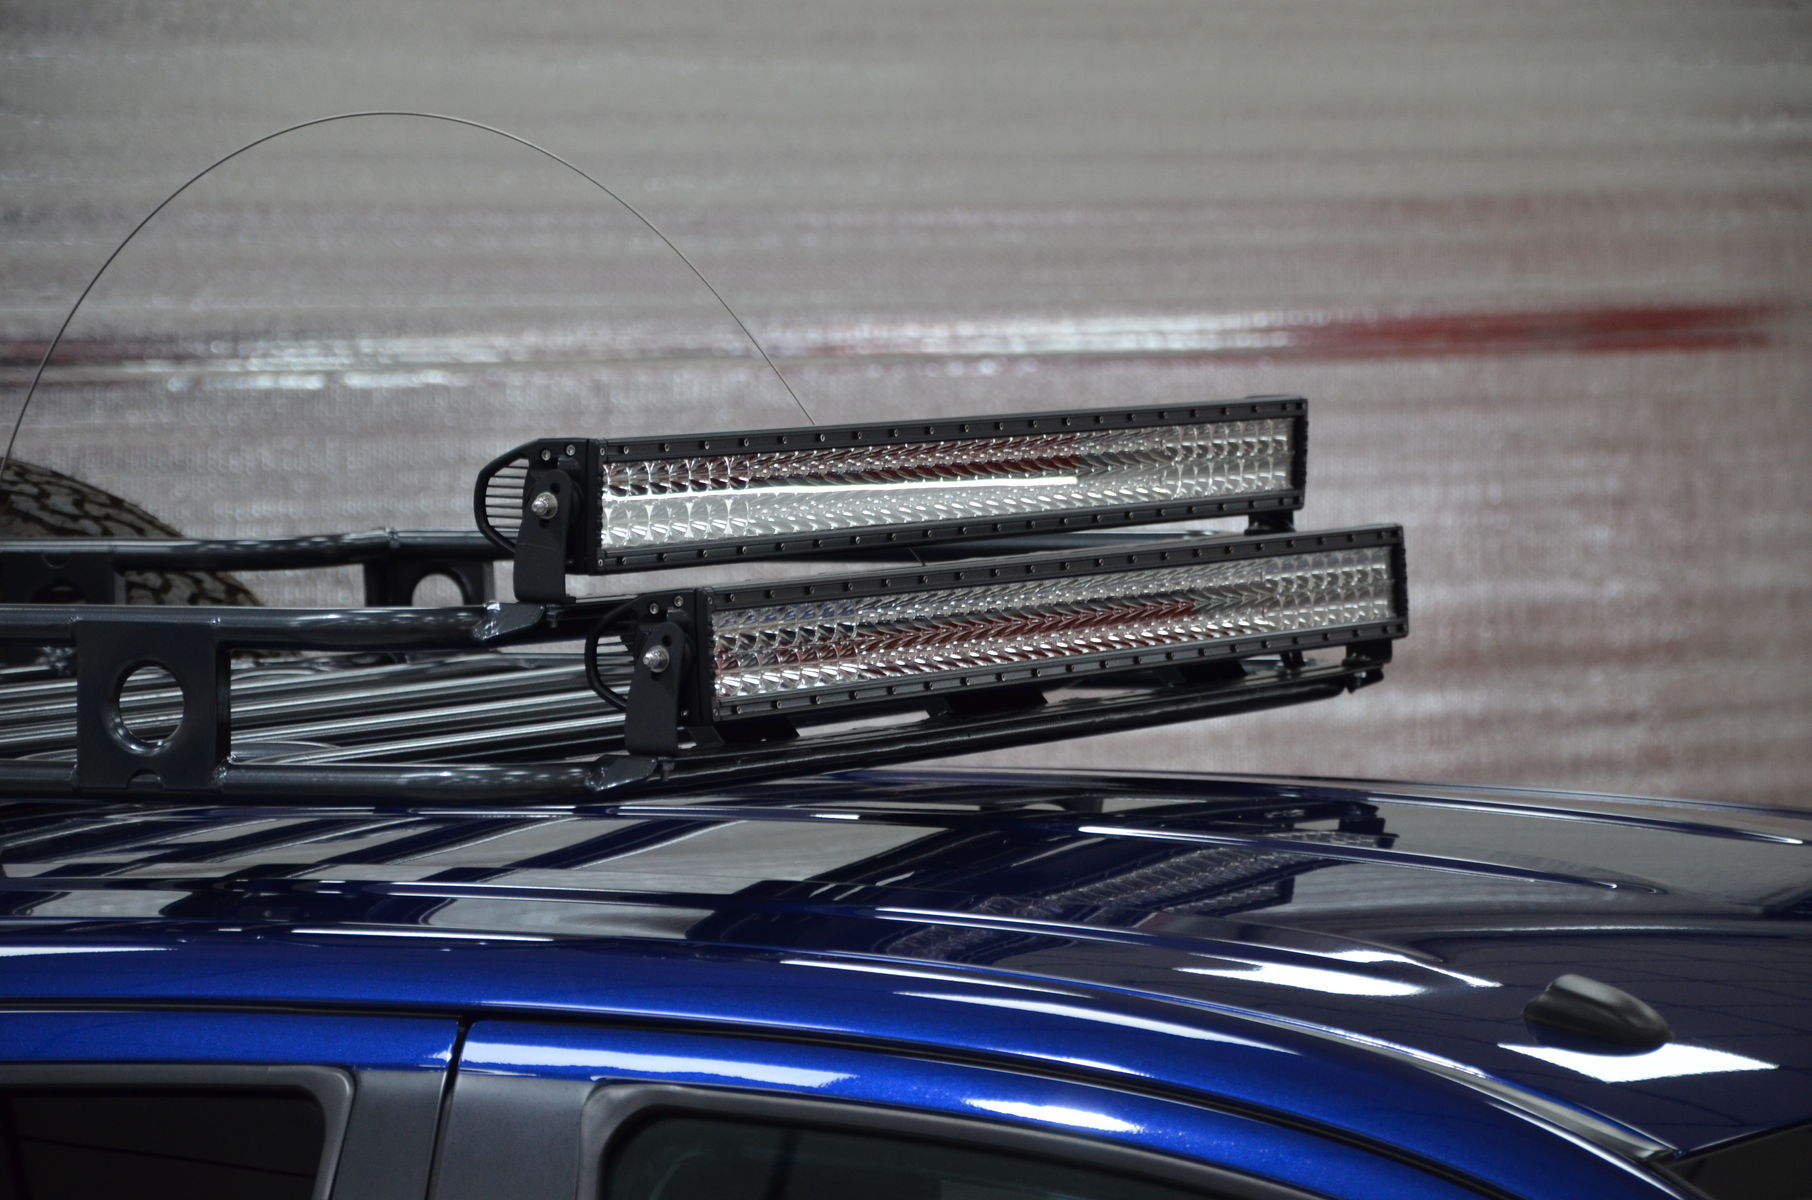 2014 Toyota Tundra | N-FAB TRD PRO Build - Toyota Tundra Roof Rack LEDS